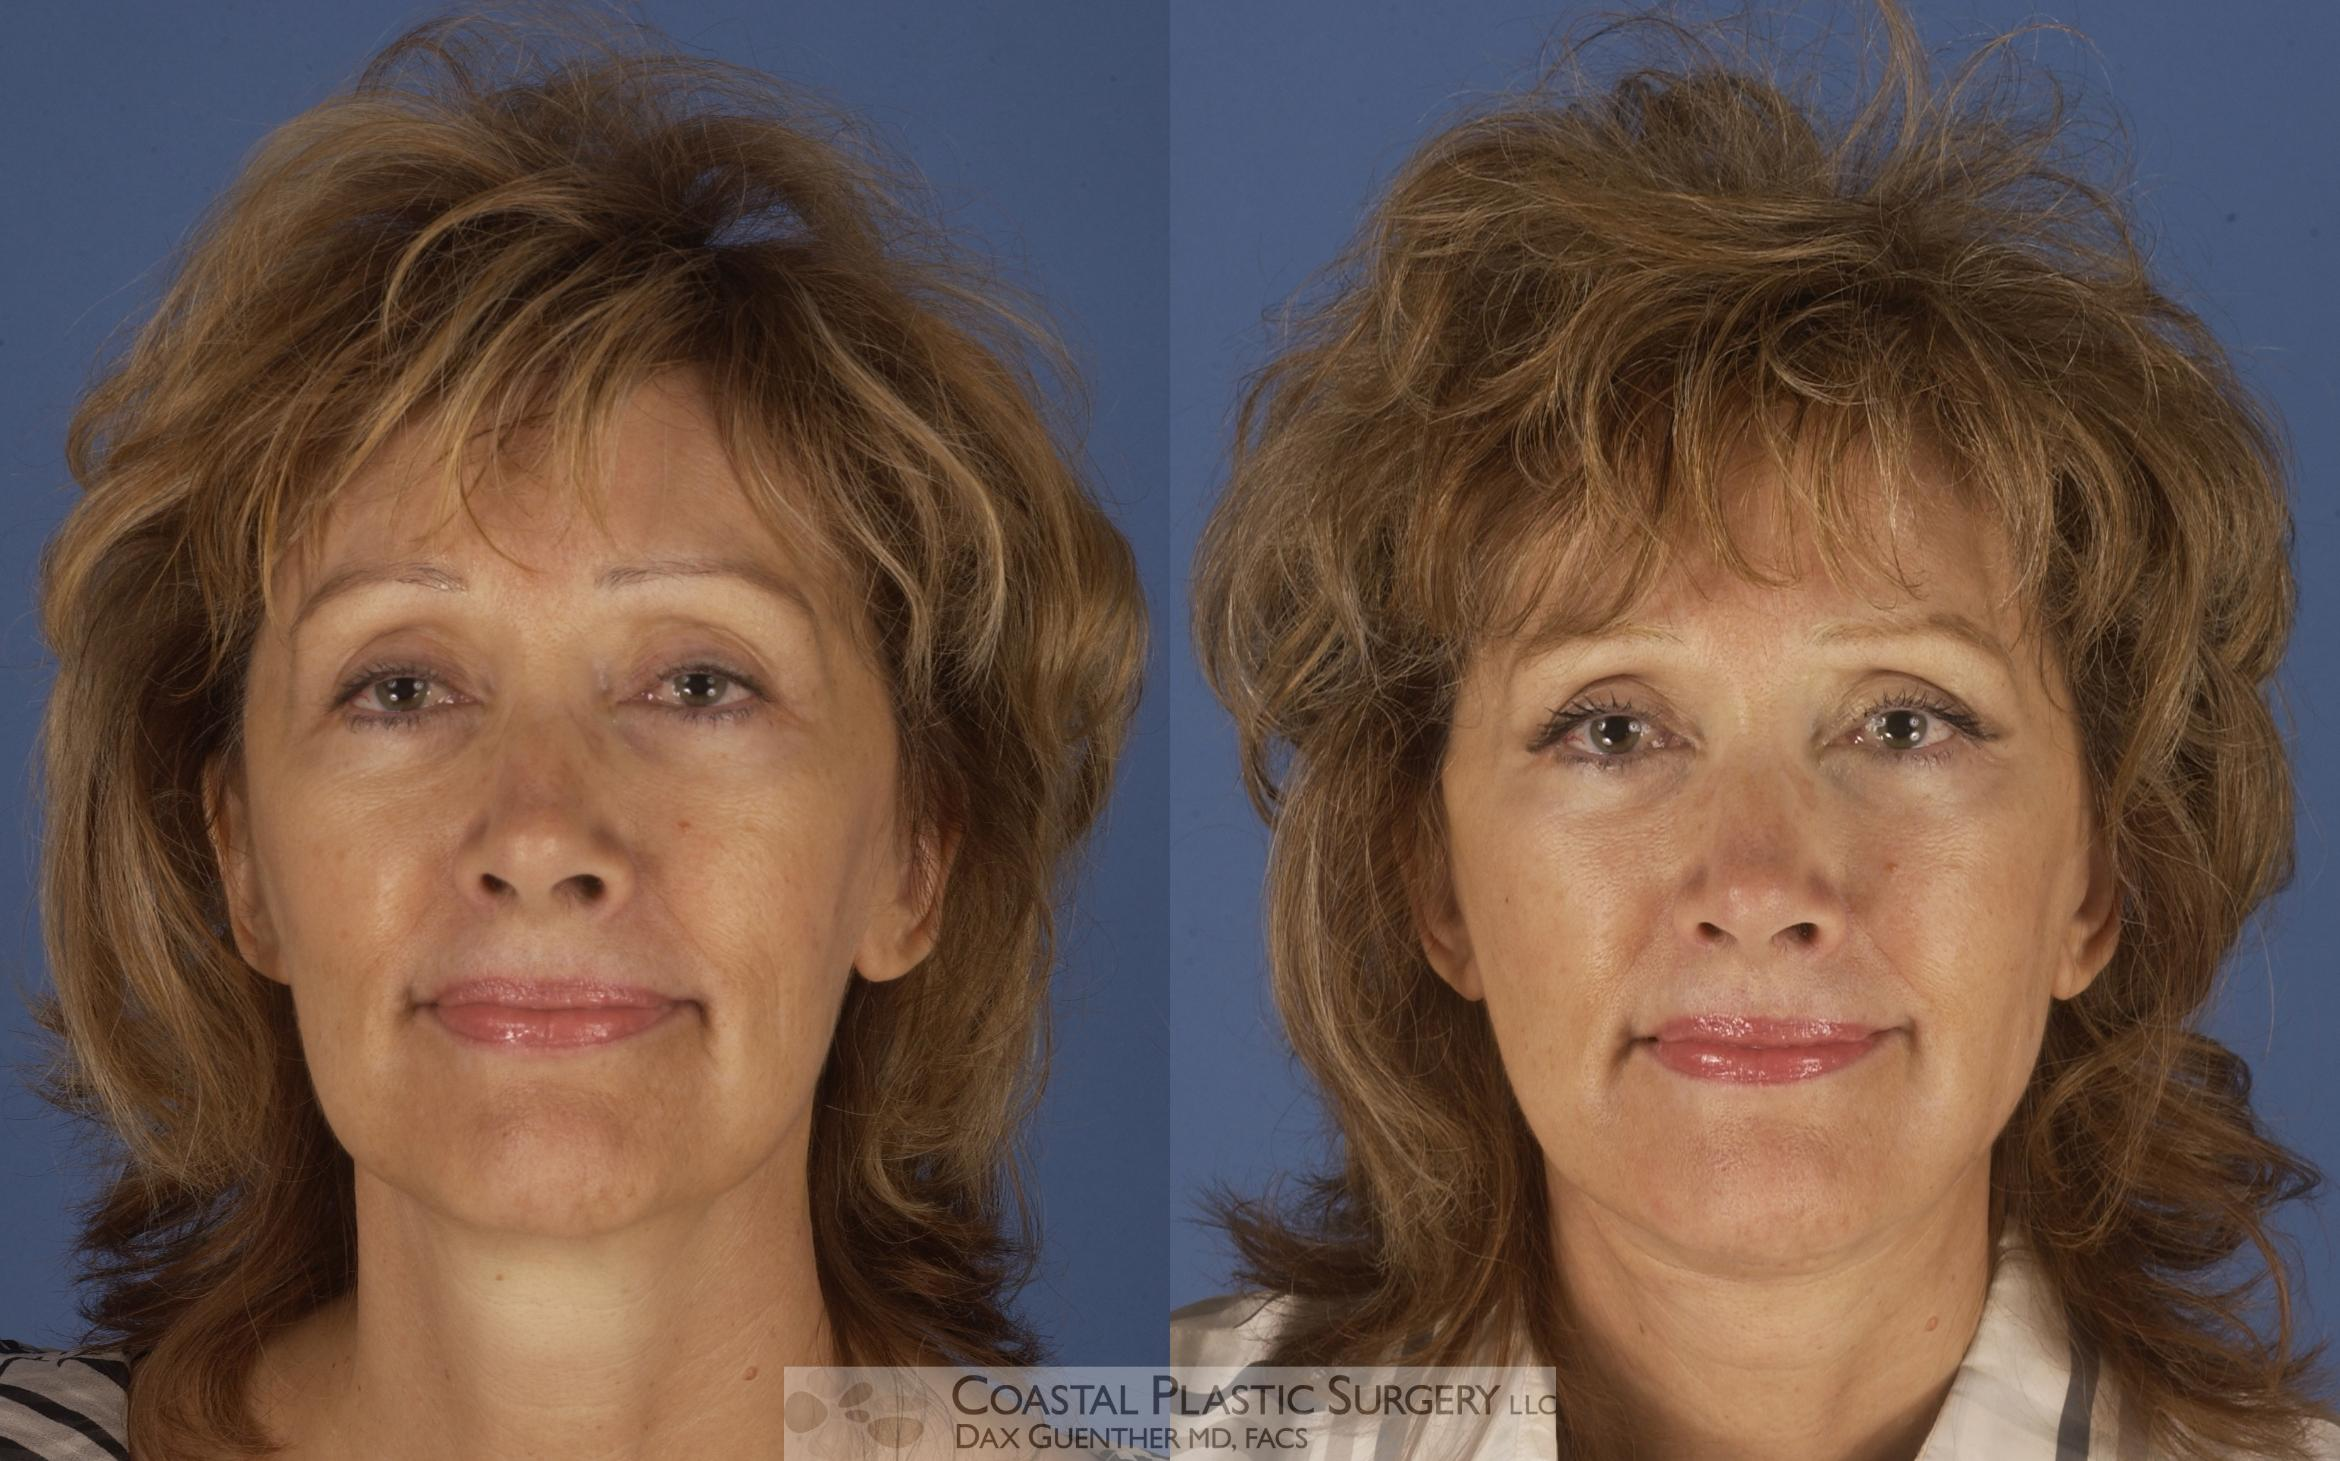 Face/Neck Lift Before & After Photo | Hingham, Boston & Nantucket, MA | Dax Guenther, MD: Coastal Plastic Surgery